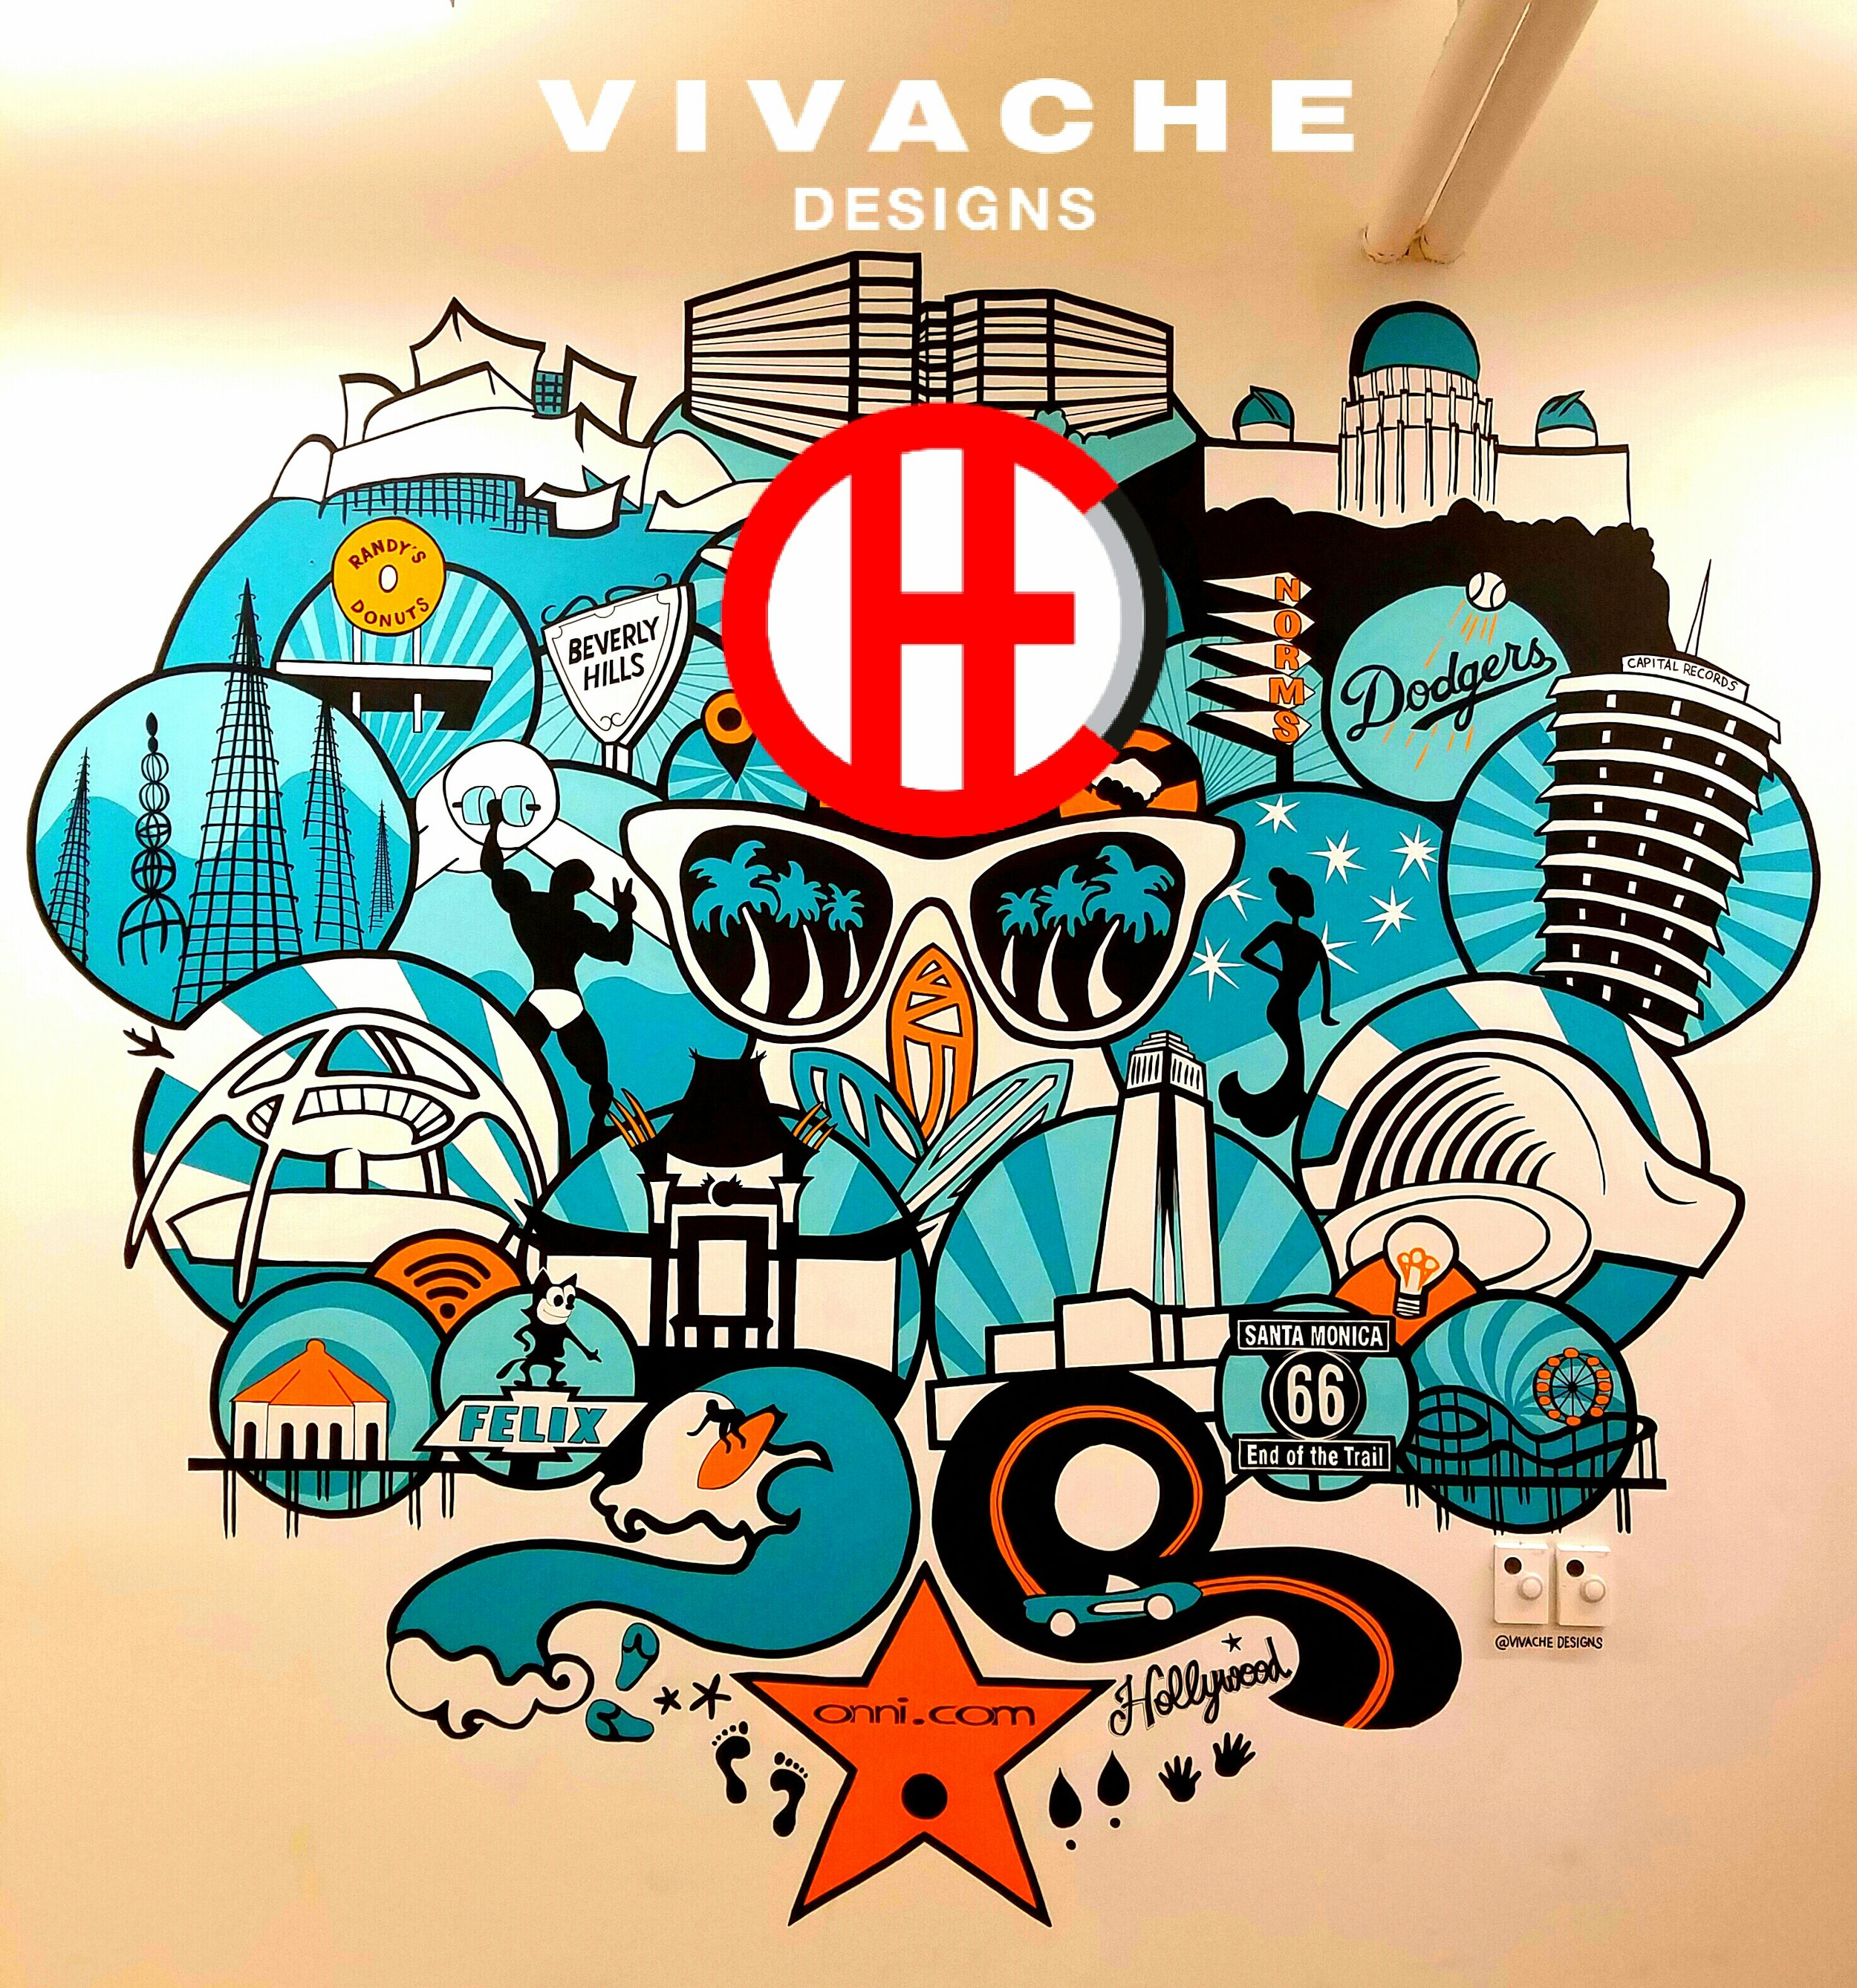 This Vivache Designs original iconic painted wall mural was custom designed for WeWork in The Manhattan Beach Towers in Los Angeles. This mural is all about Los Angeles iconic buildings, signs, sports team, and famous places.